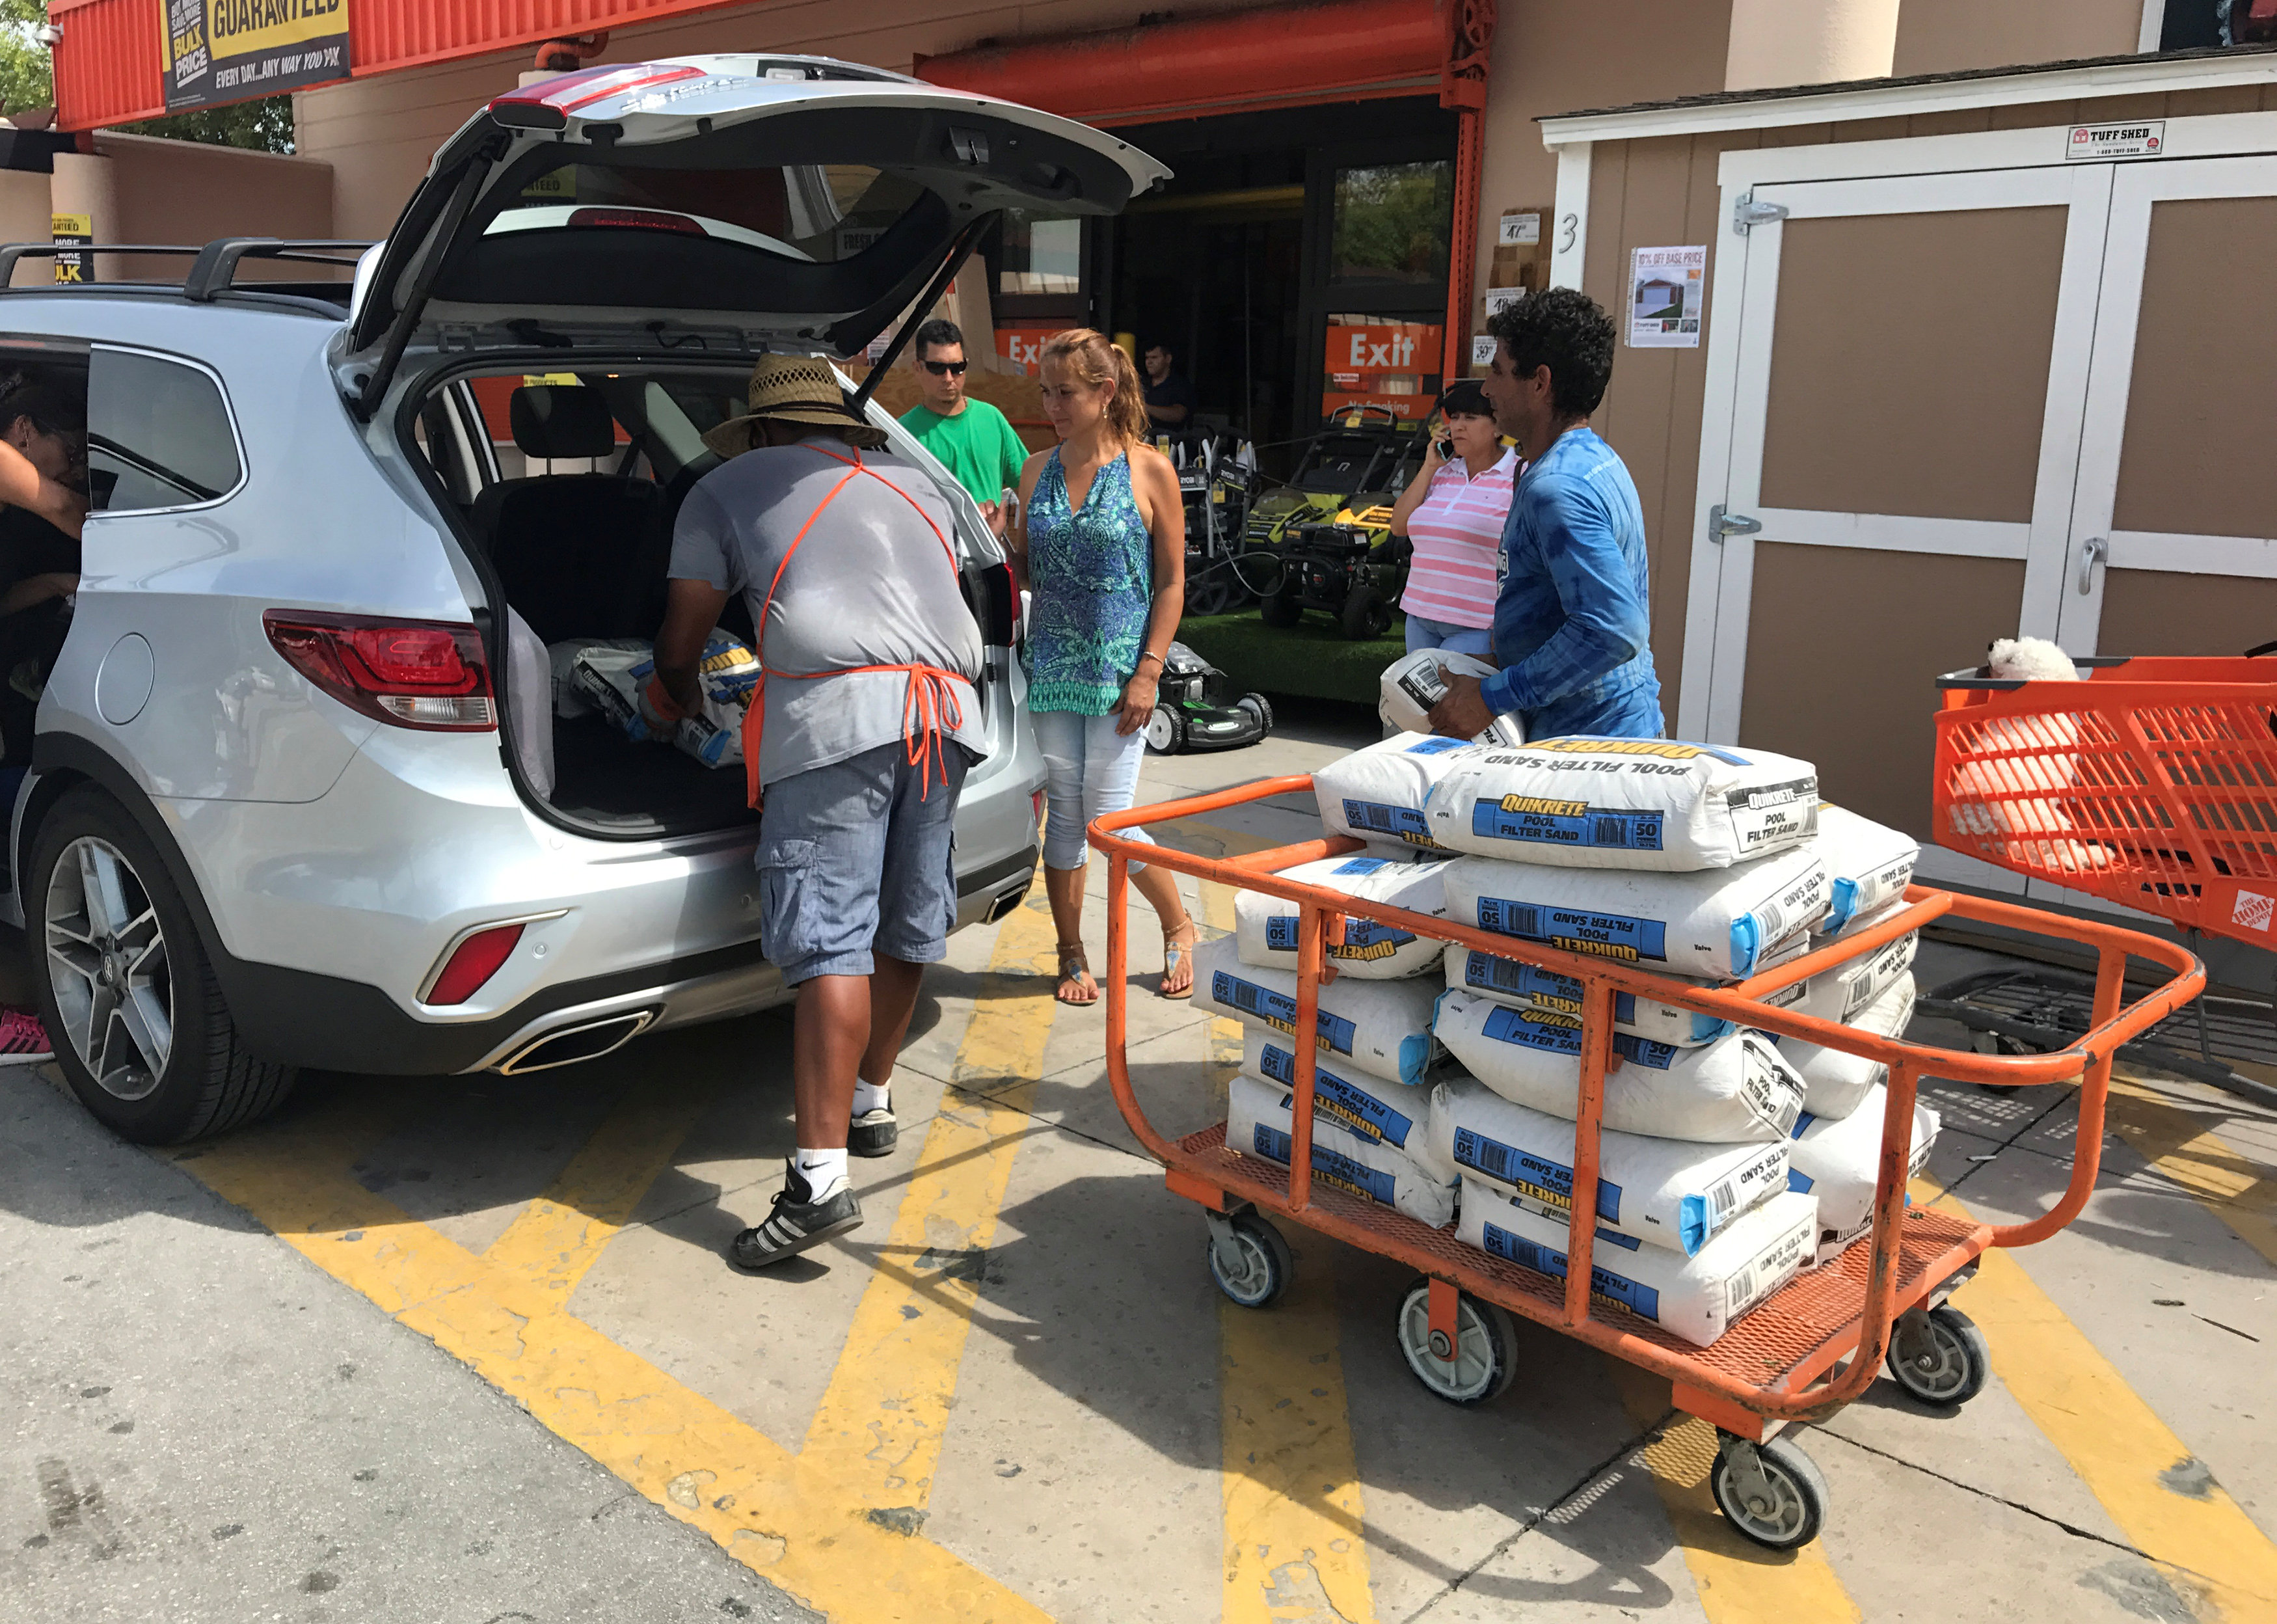 A Home Depot store employee helps to load bags of sand for customers in the Little Havana neighborhood in Miami, Florida on Sept. 5, 2017. (REUTERS/Joe Skipper)